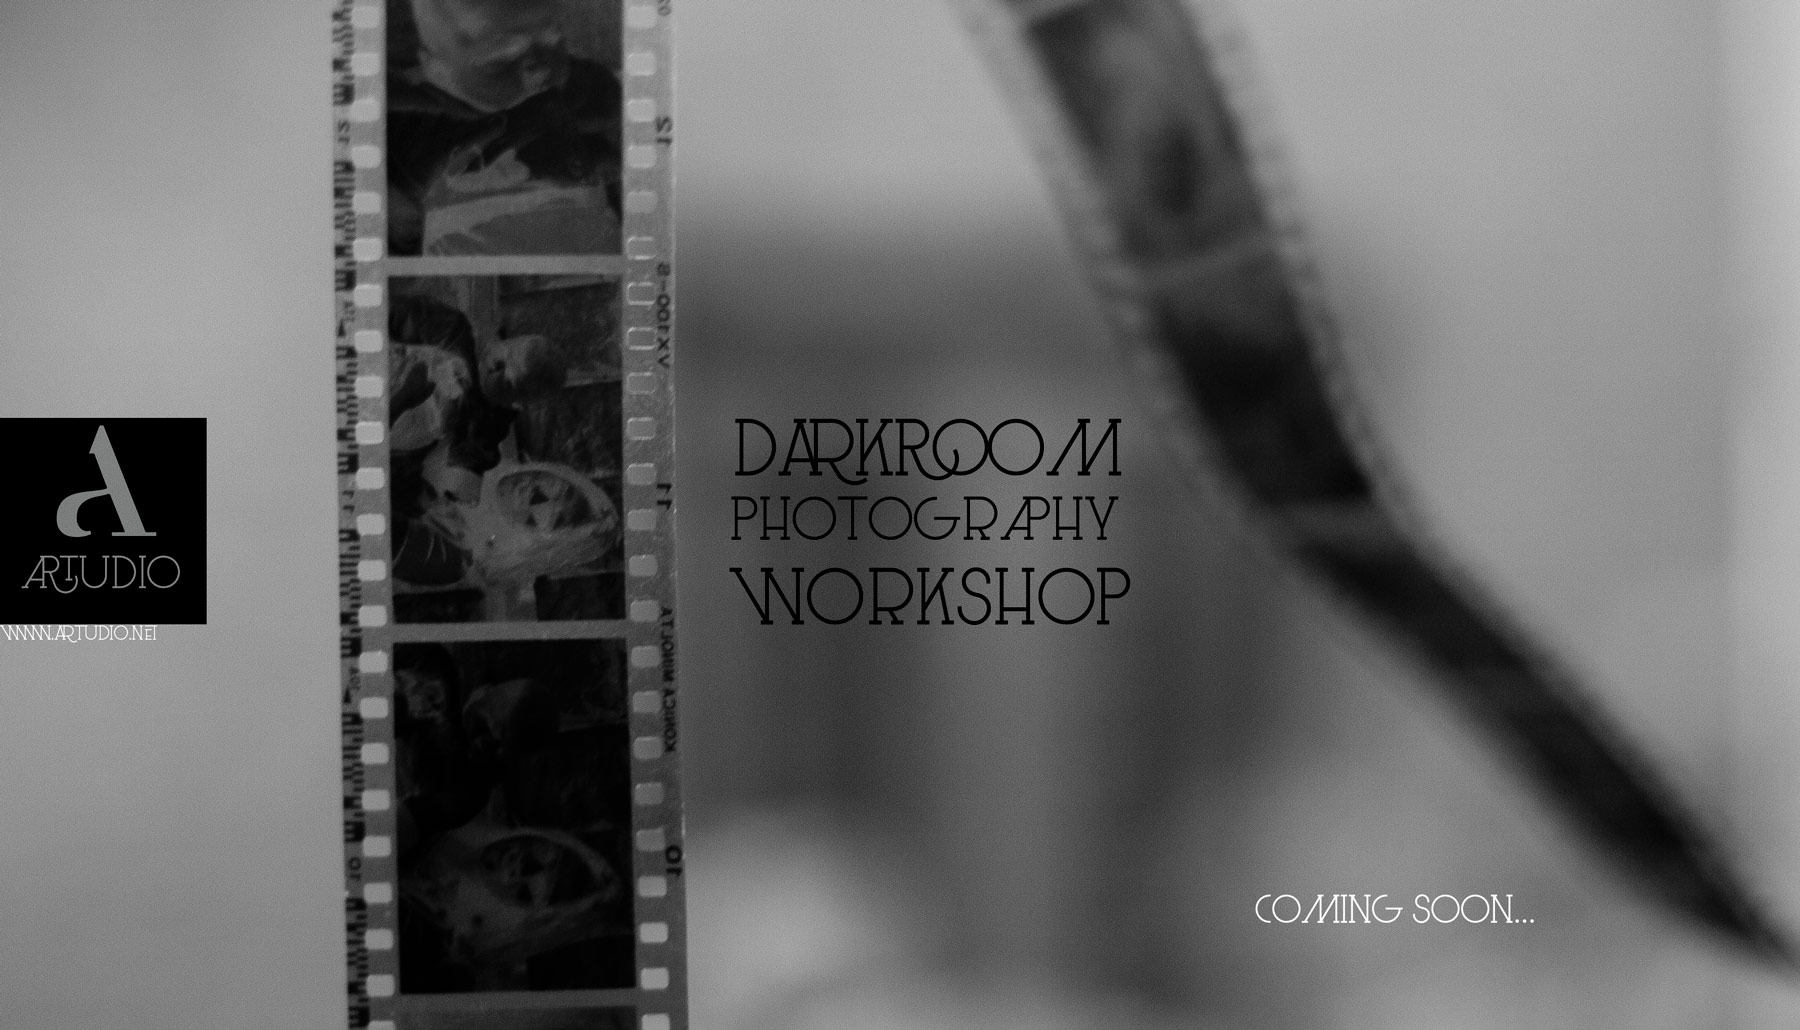 DARKROOM PHOTOGRAPHY WORKSHOP COMING SOON @ ARTUDIO